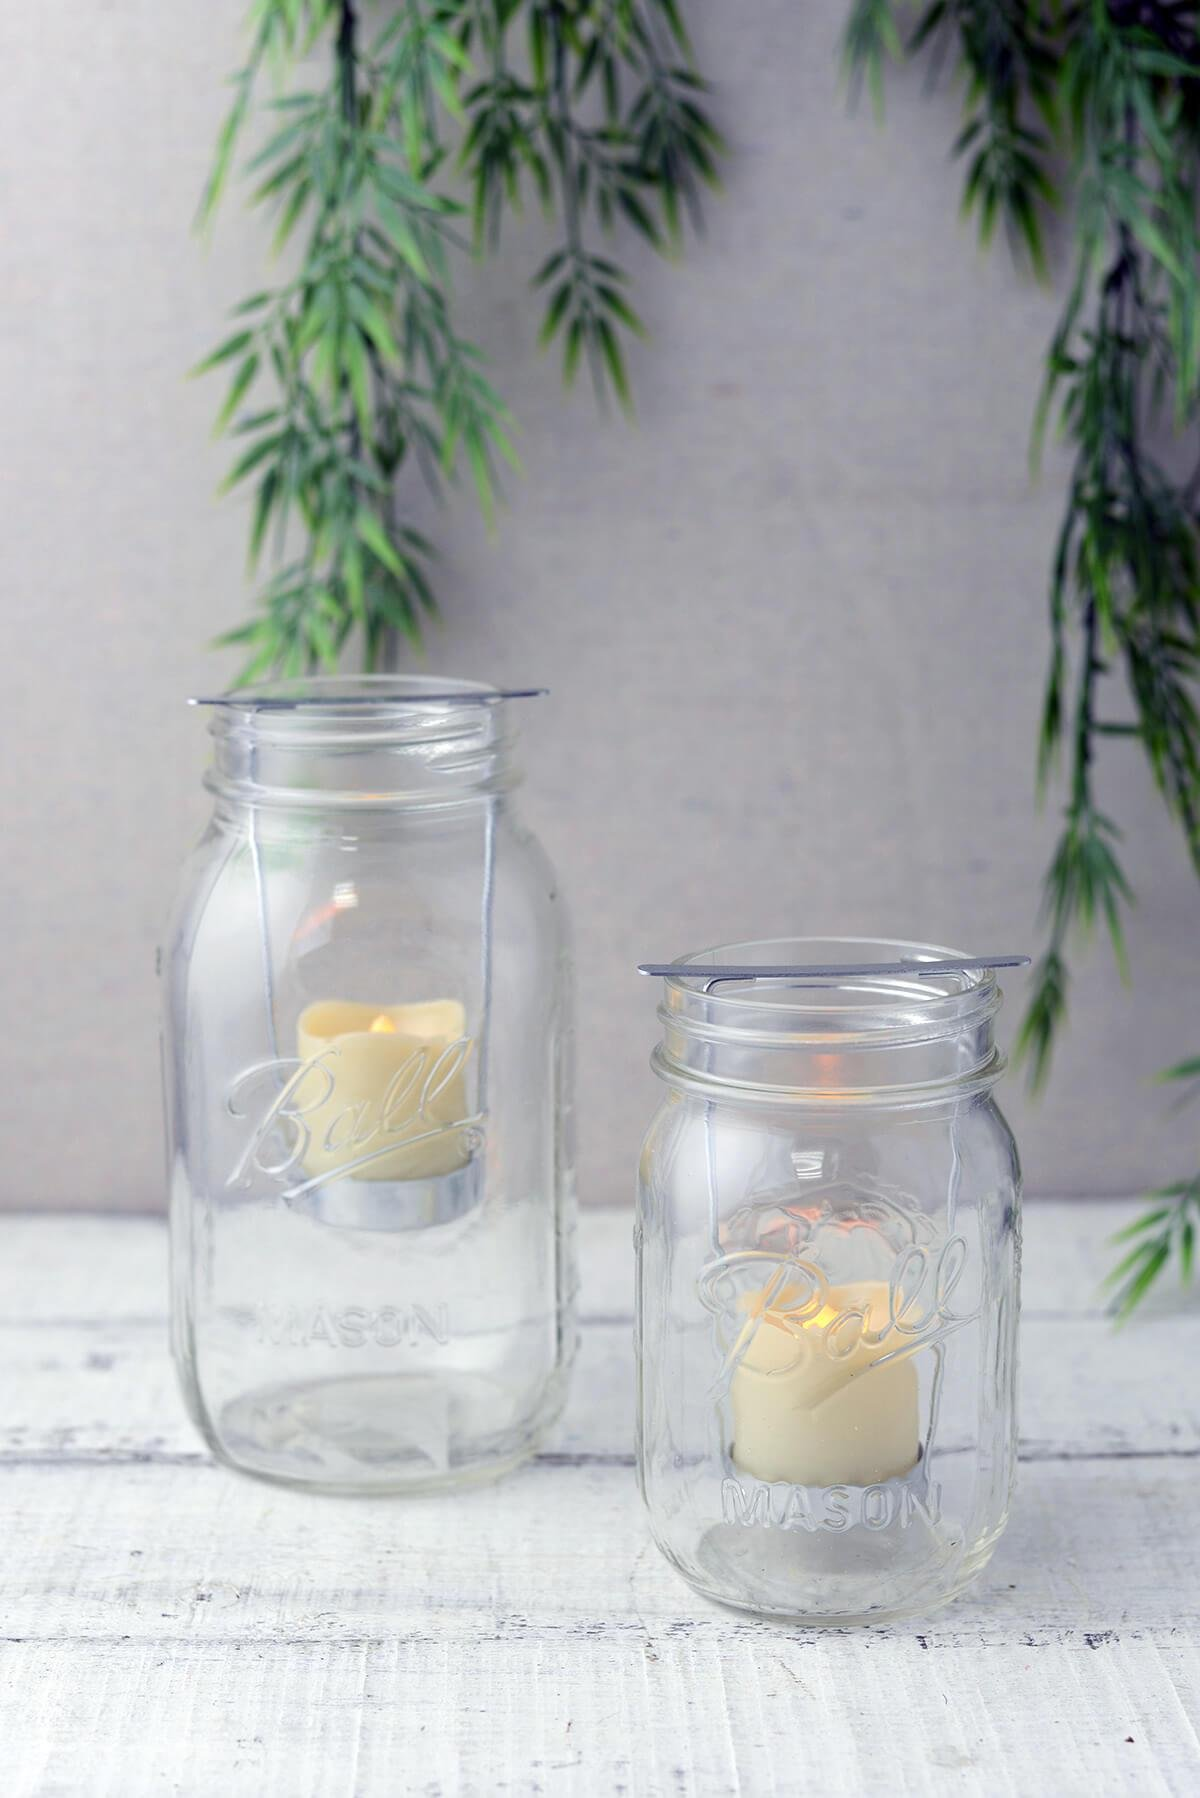 Richland Mason Jar Battery Operated Votive Candles & Holders with Timer Set of 72